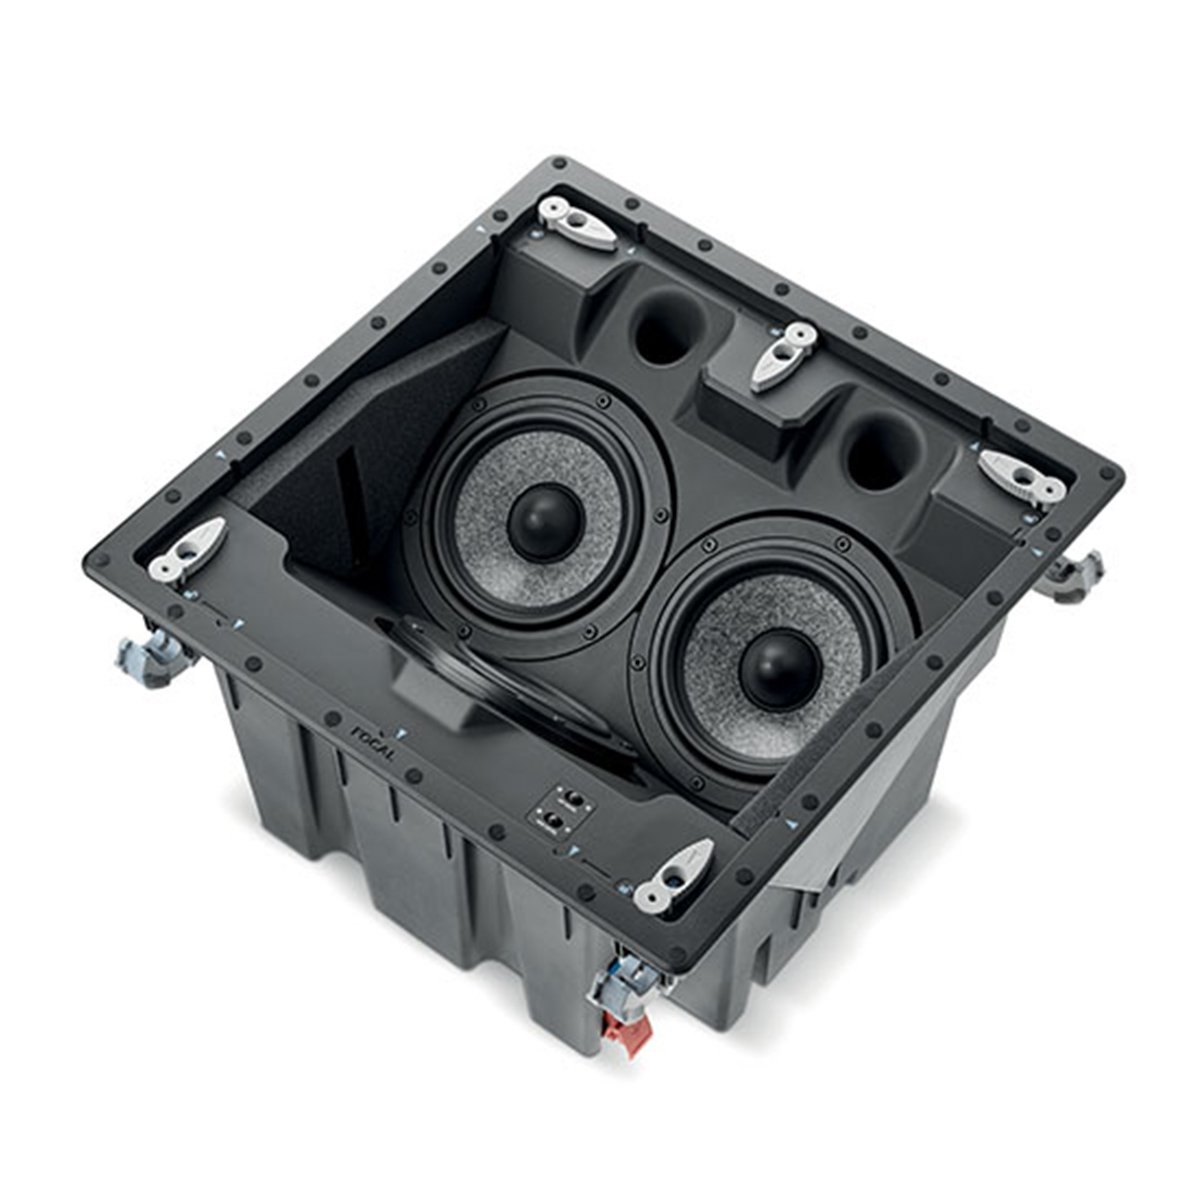 Focal Iclcr5 Top Life Style Store